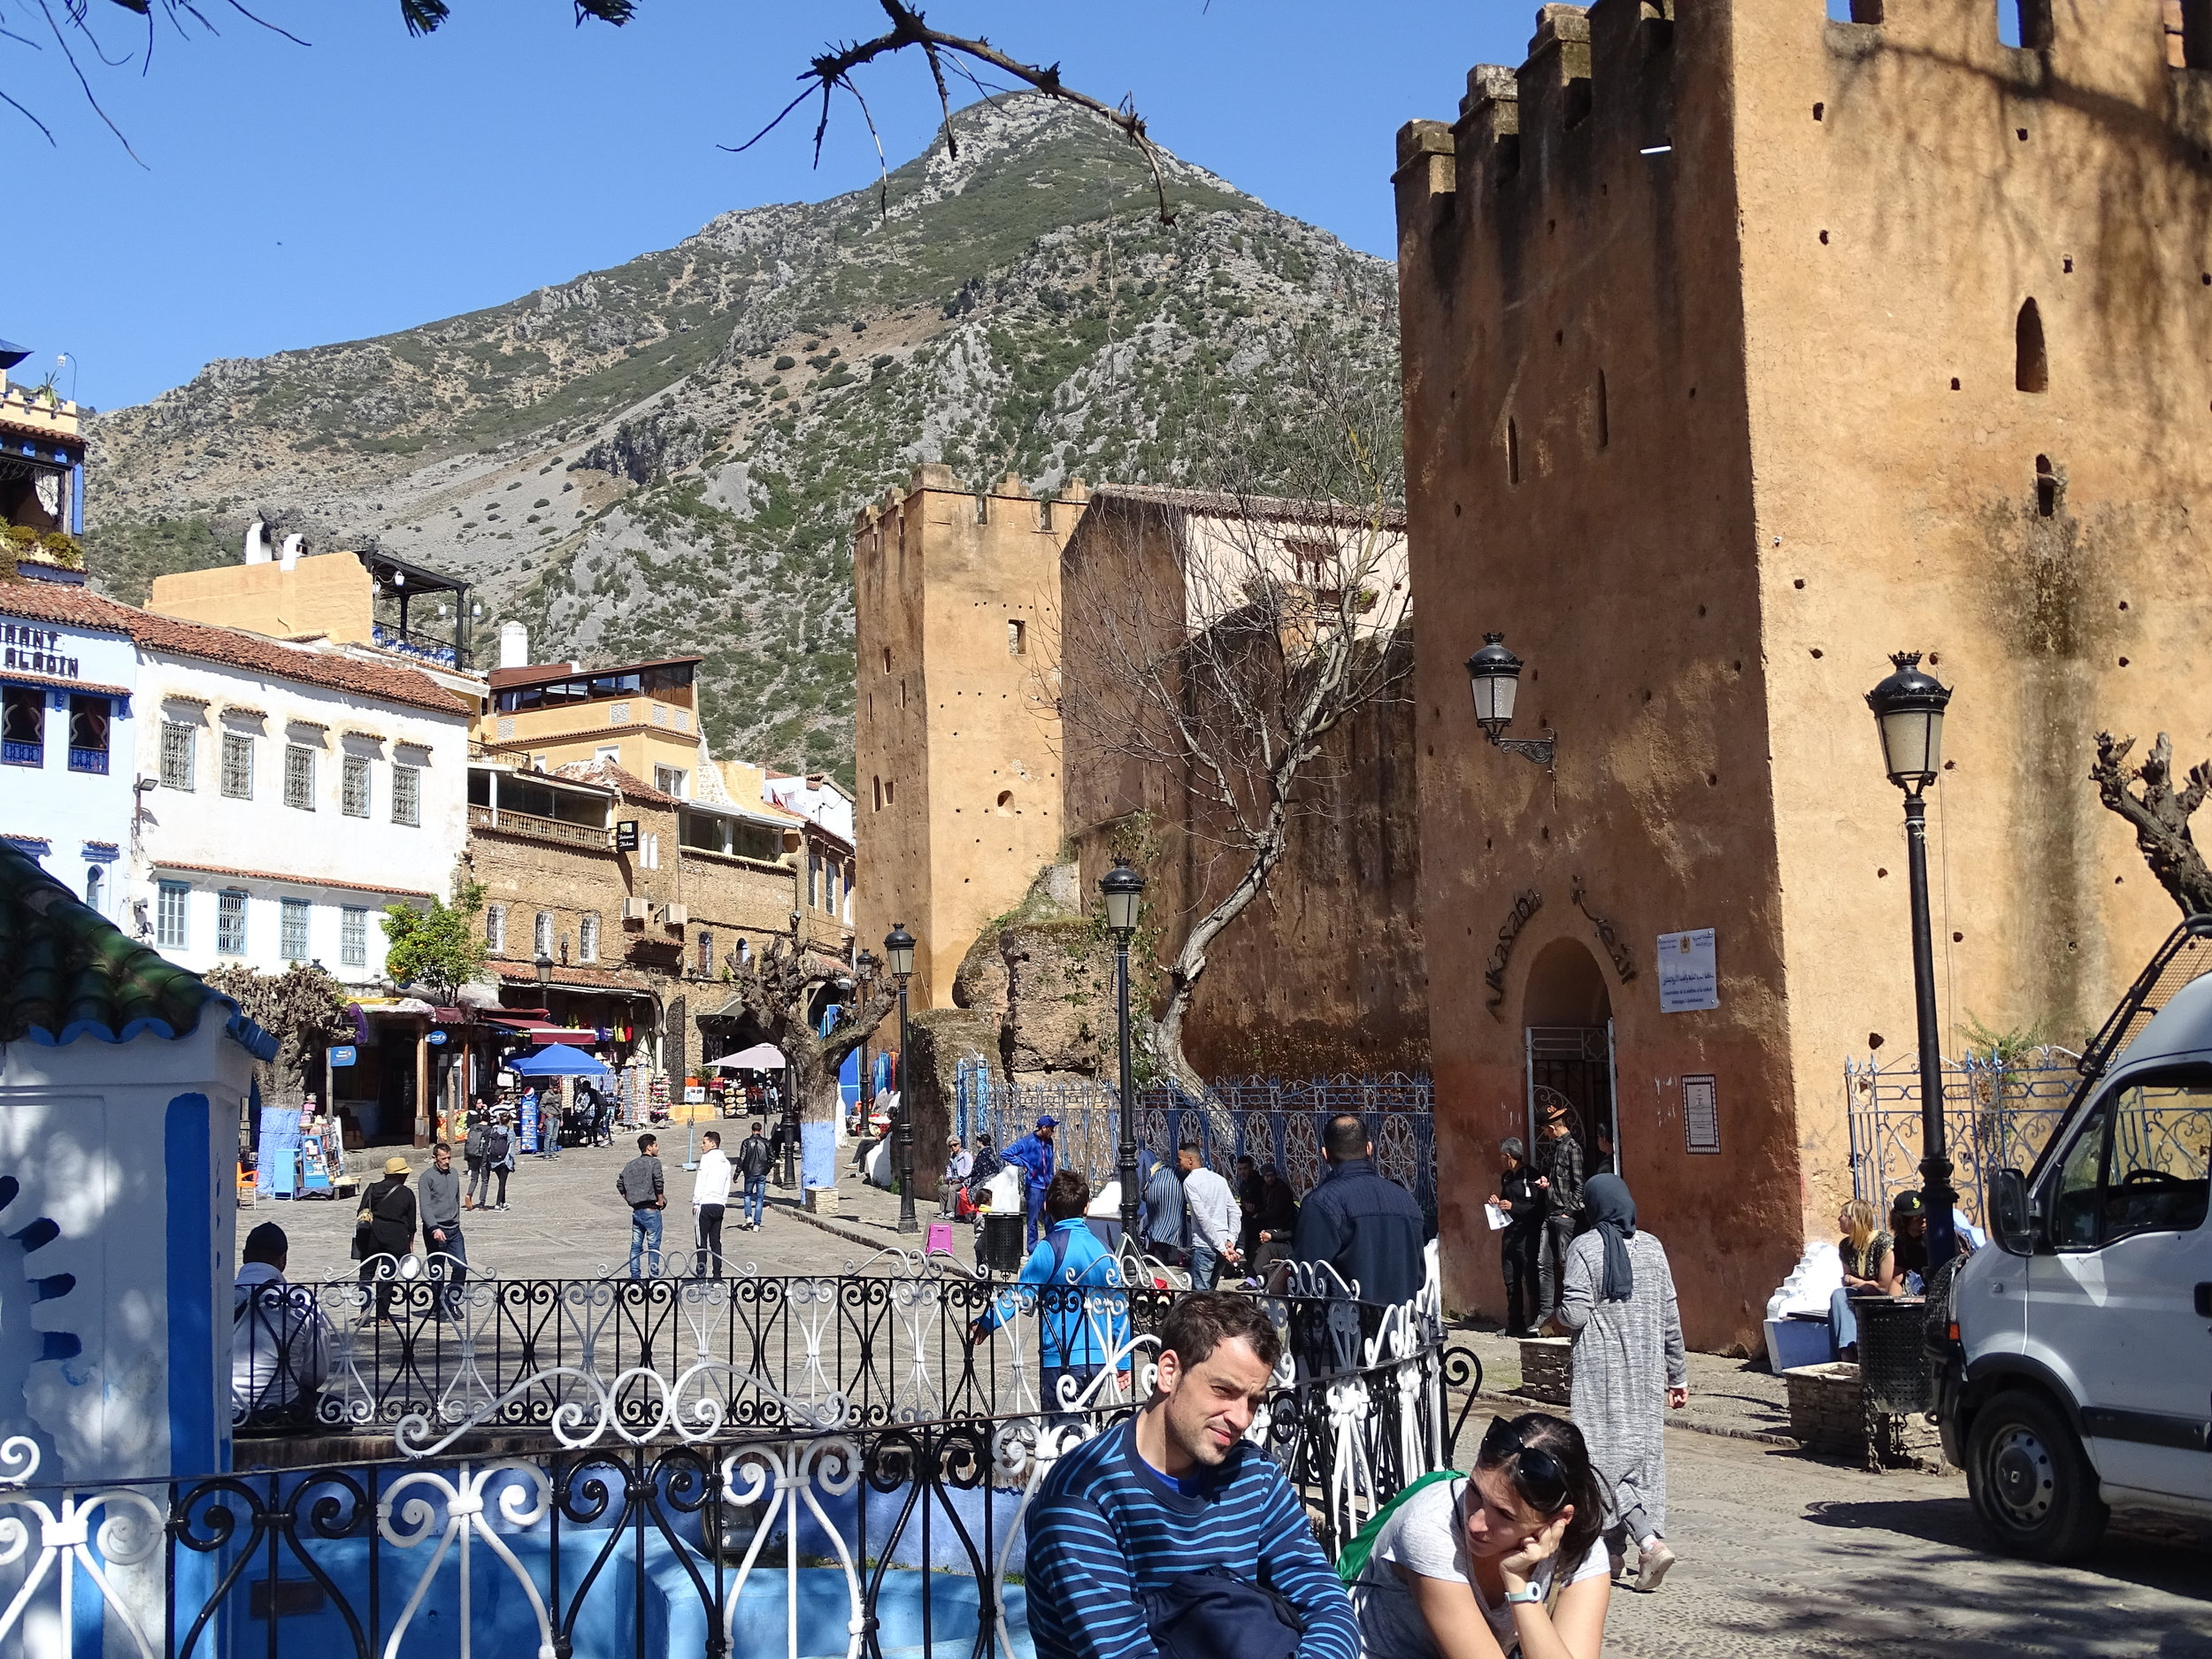 looking out of the medina - the Rif Mountains in the background and the old Kasbah on the right